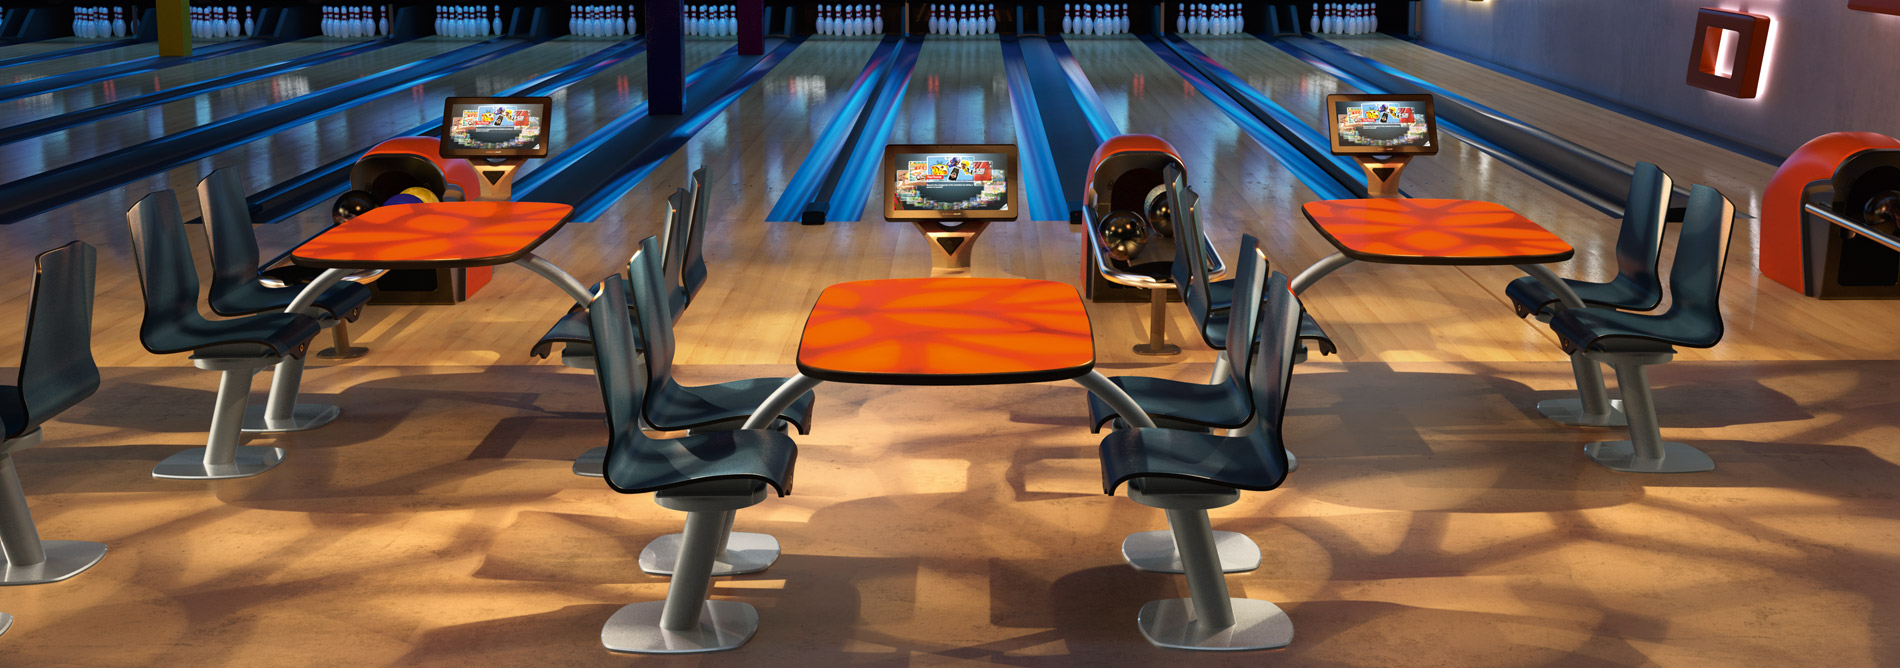 Attractive Bowling QubicaAMF Furniture Harmony Table Collection Banner2